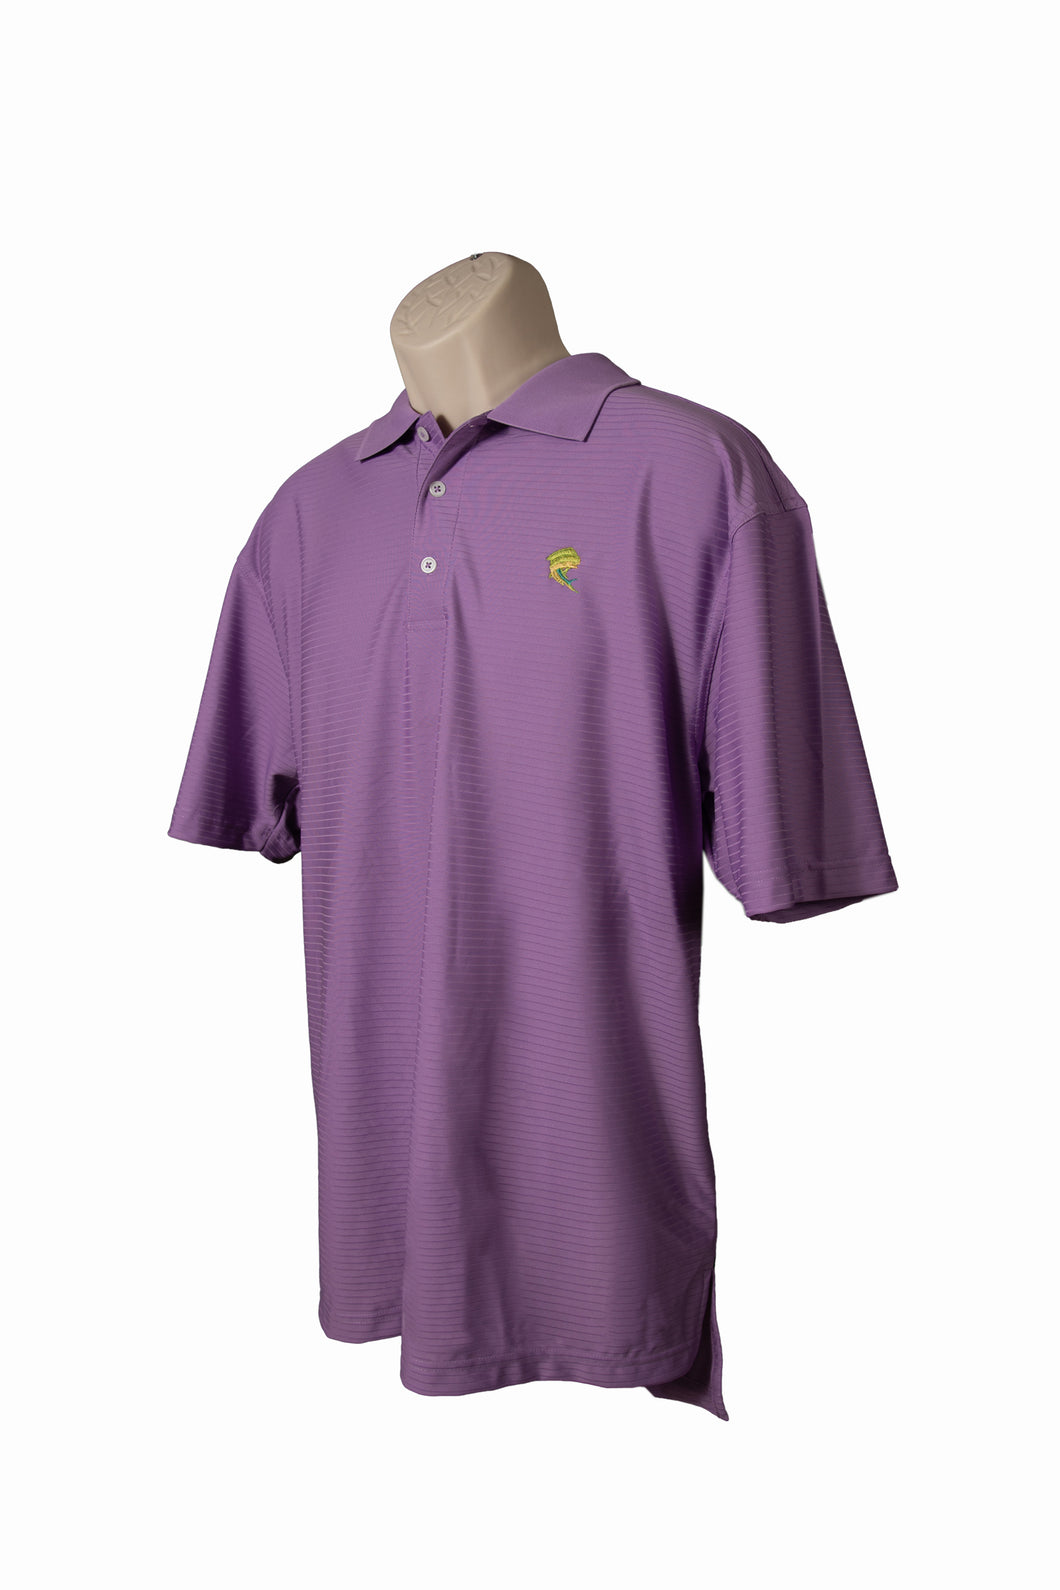 Orchid Polo Style Shirt